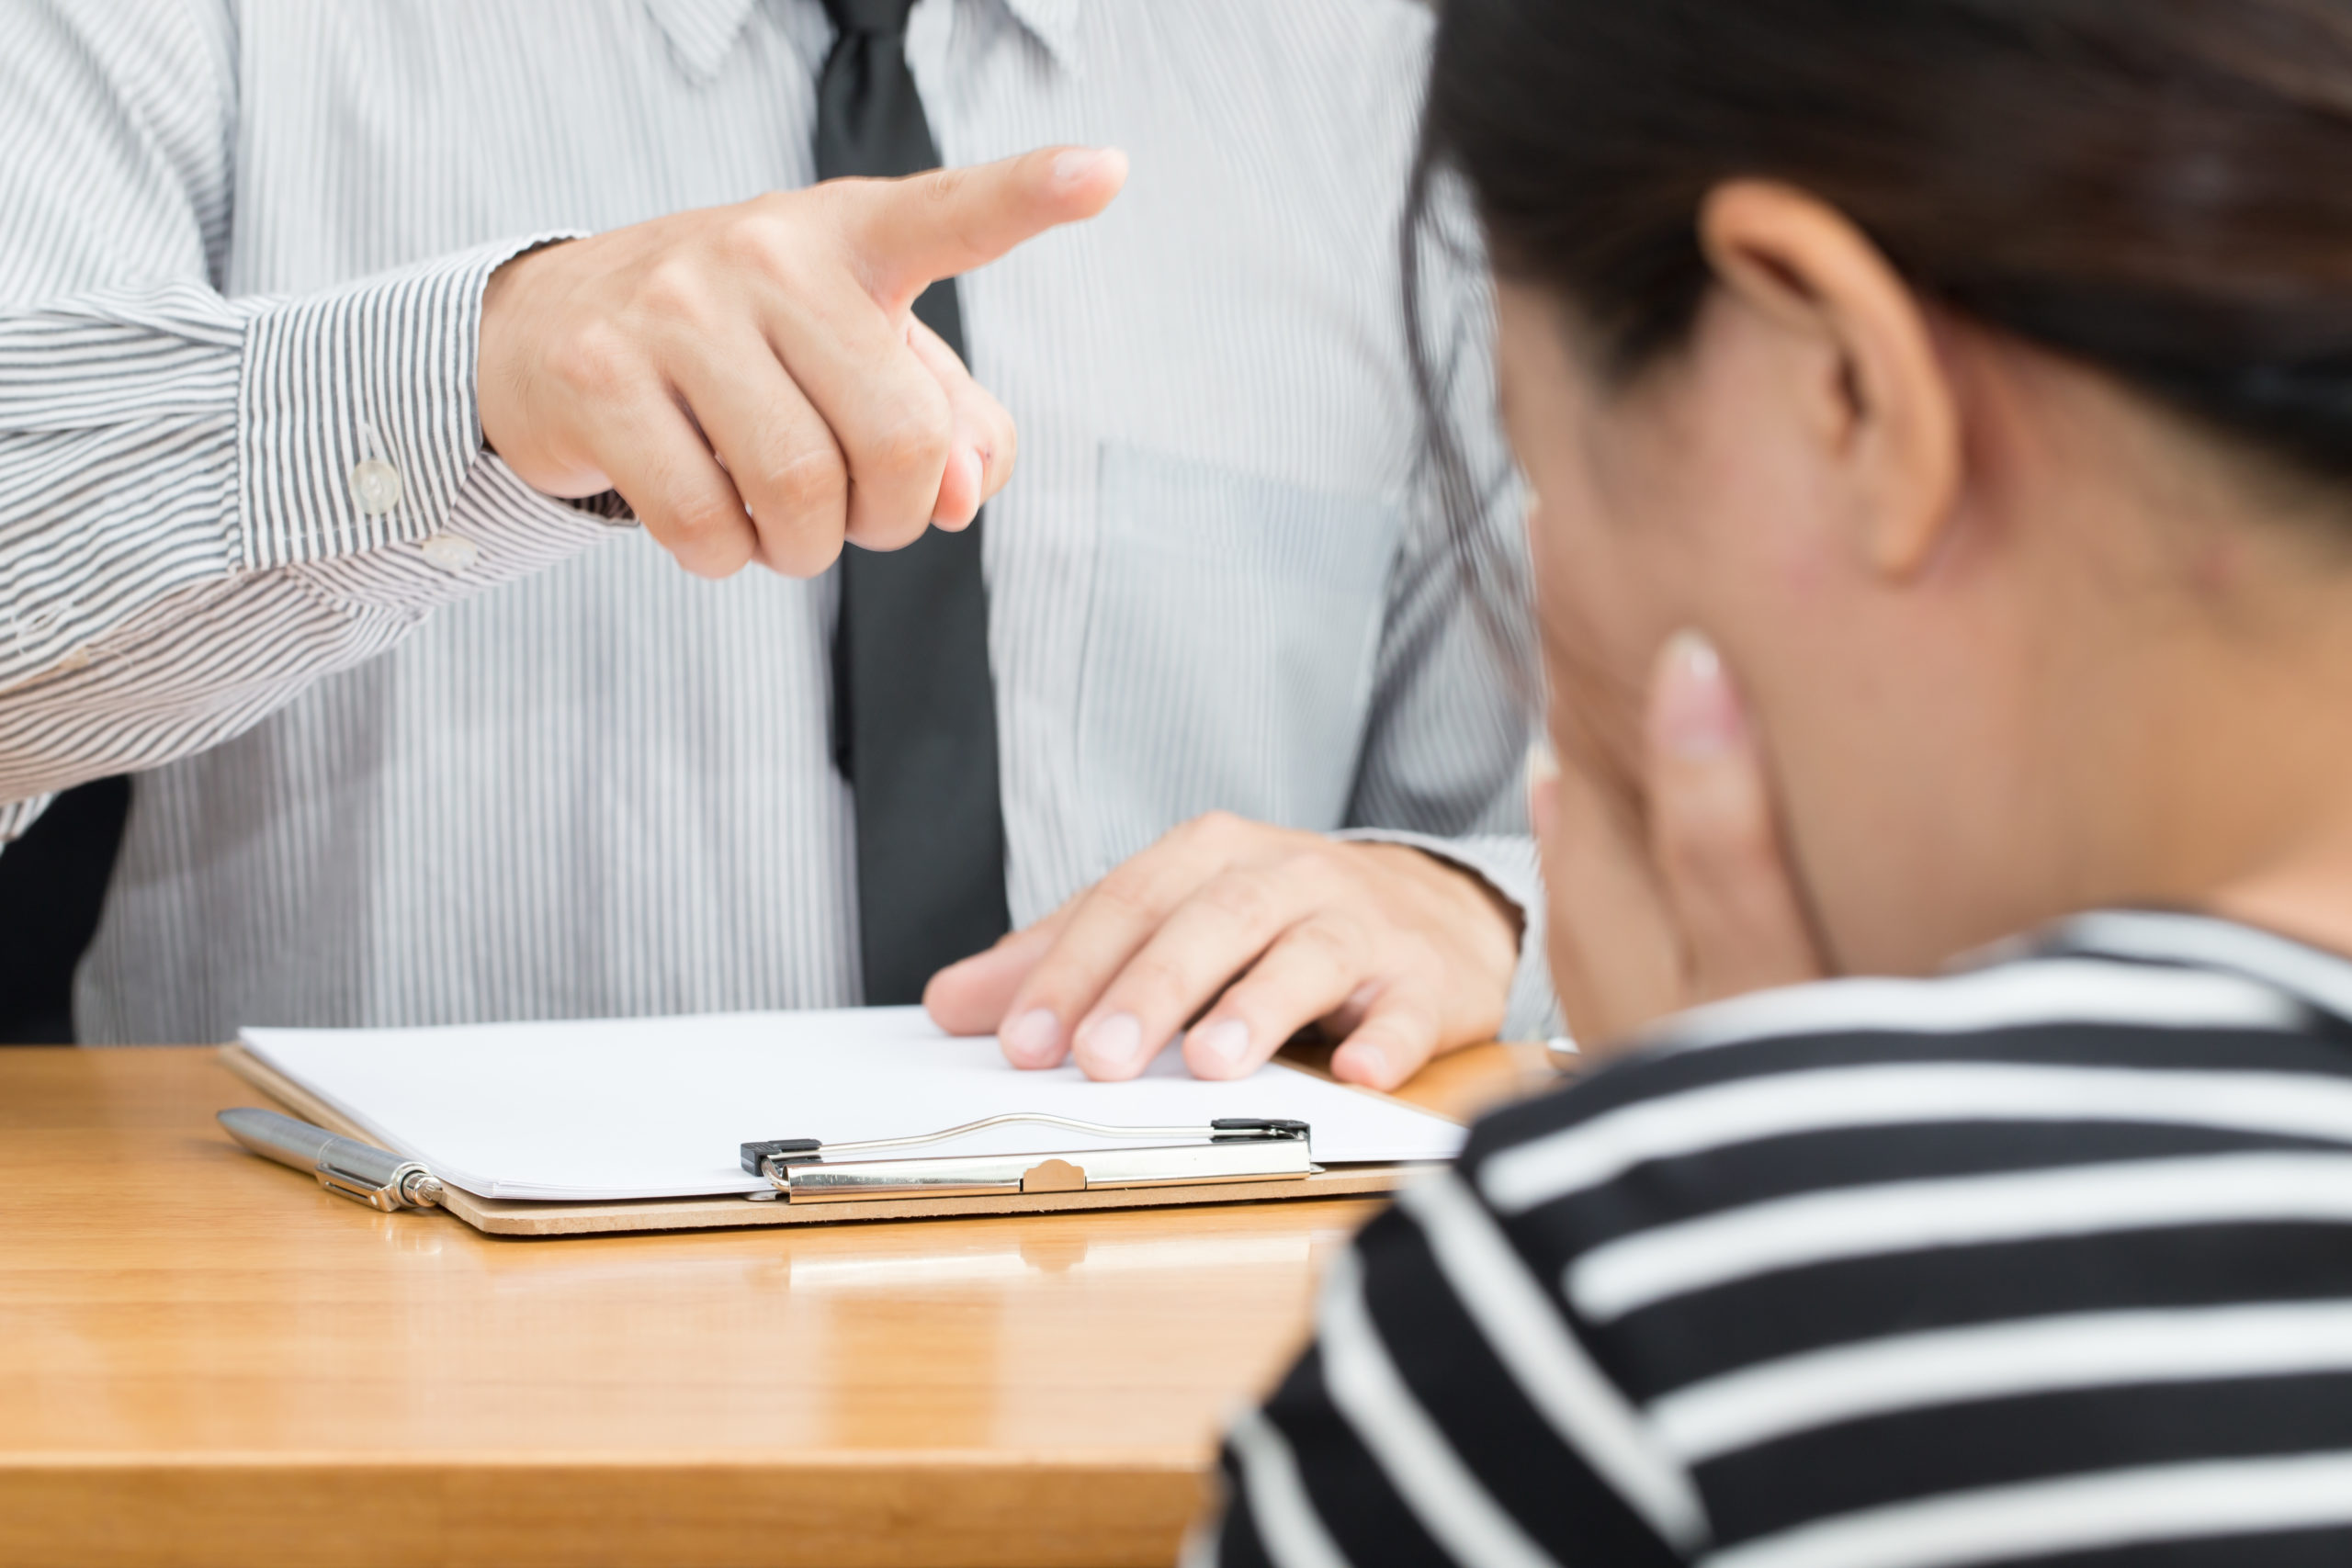 Businesswoman getting intimidated after scolded by boss and of need of conflict resolution